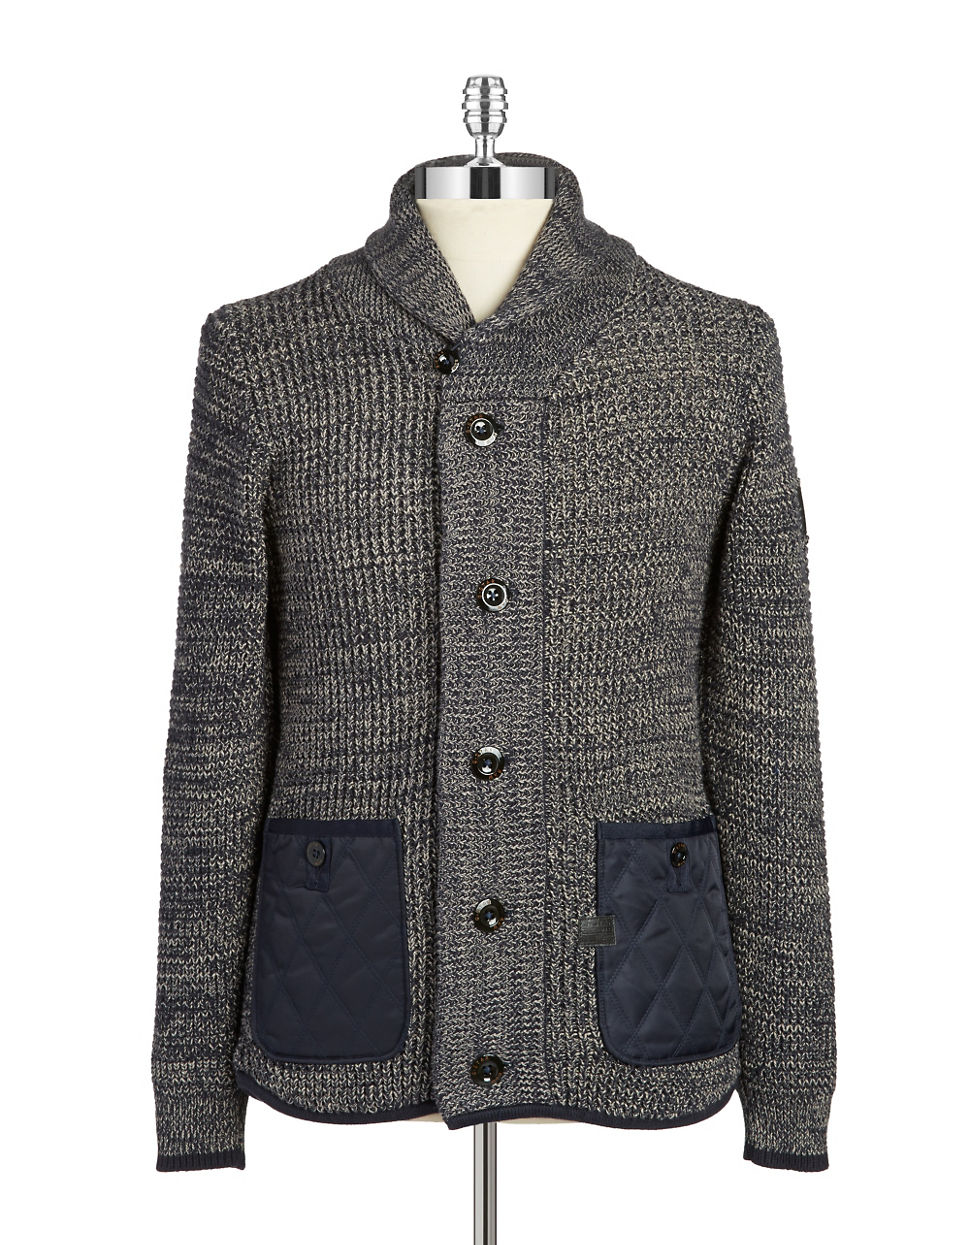 lyst g star raw marled knit sweater in blue for men. Black Bedroom Furniture Sets. Home Design Ideas